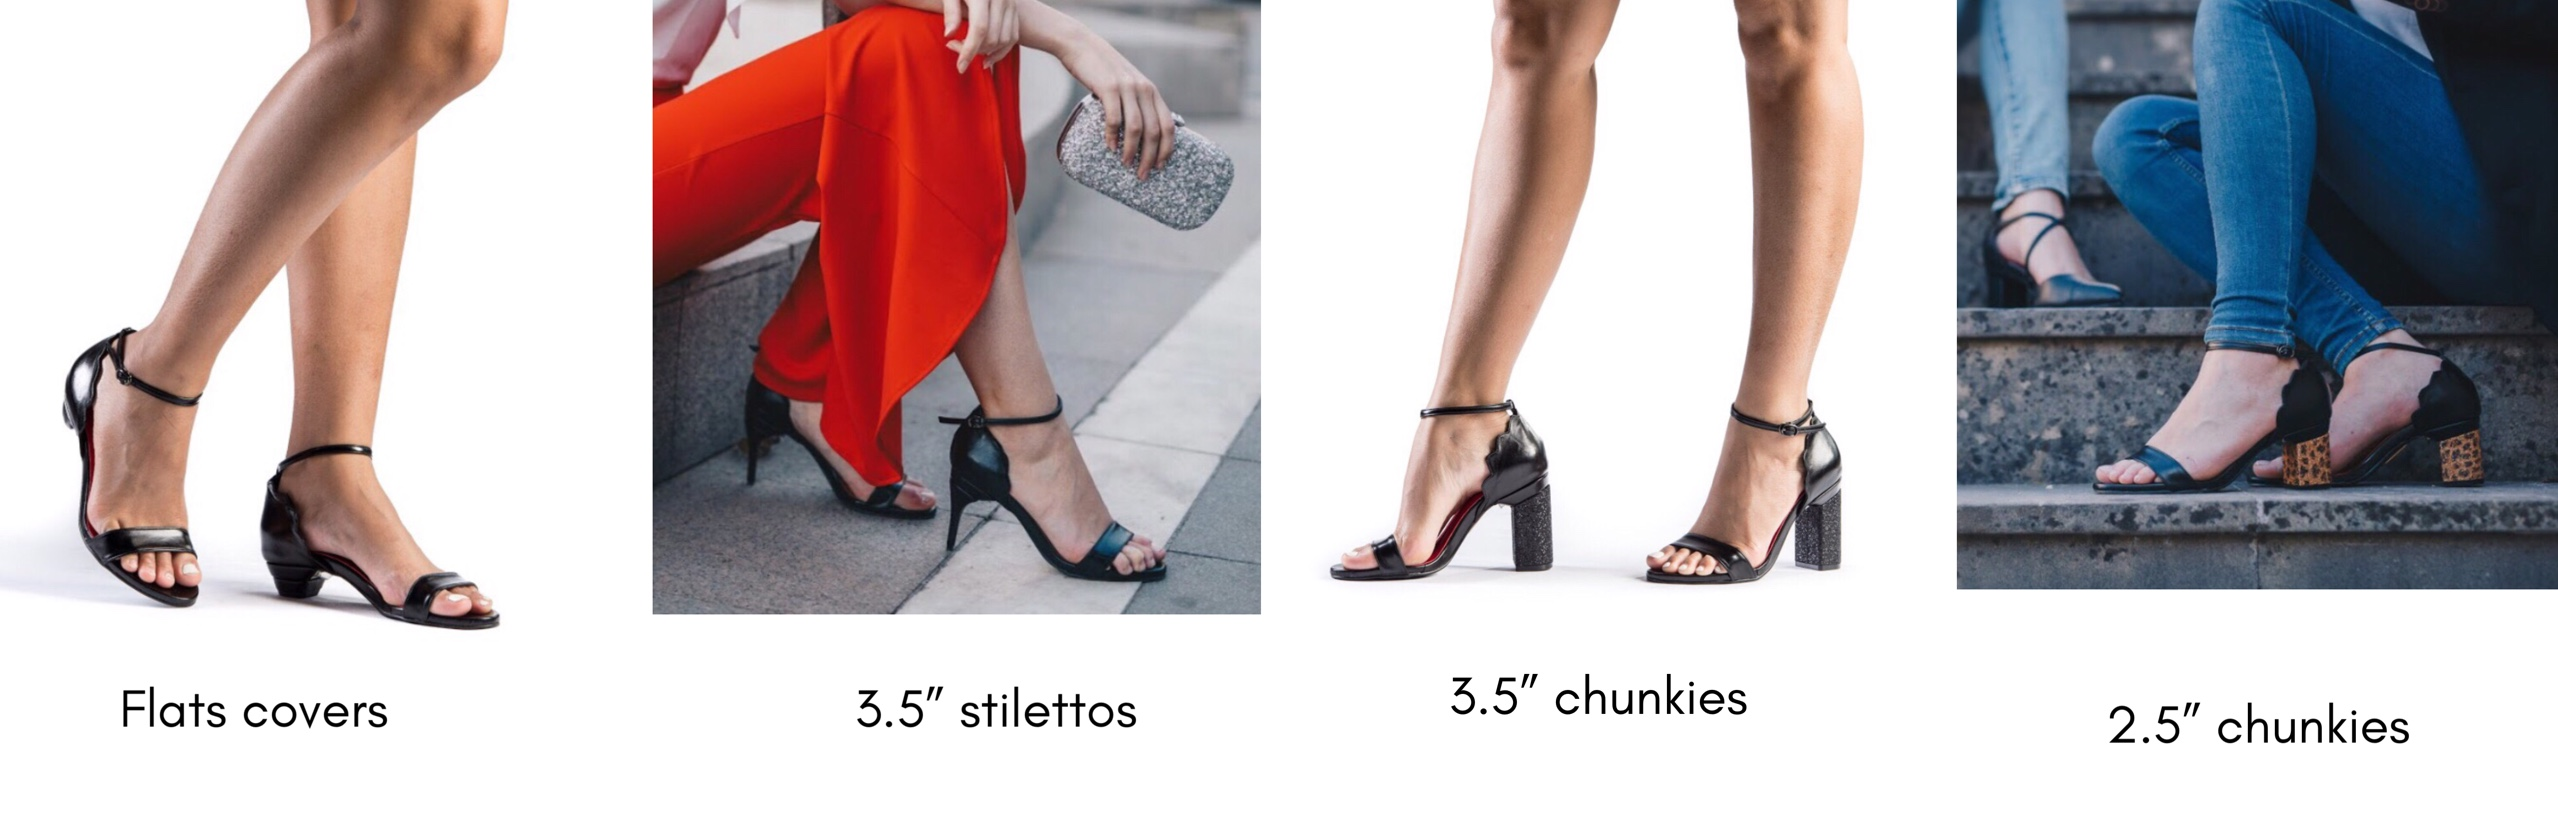 Are my high heels trying to kill me? Thrive Global